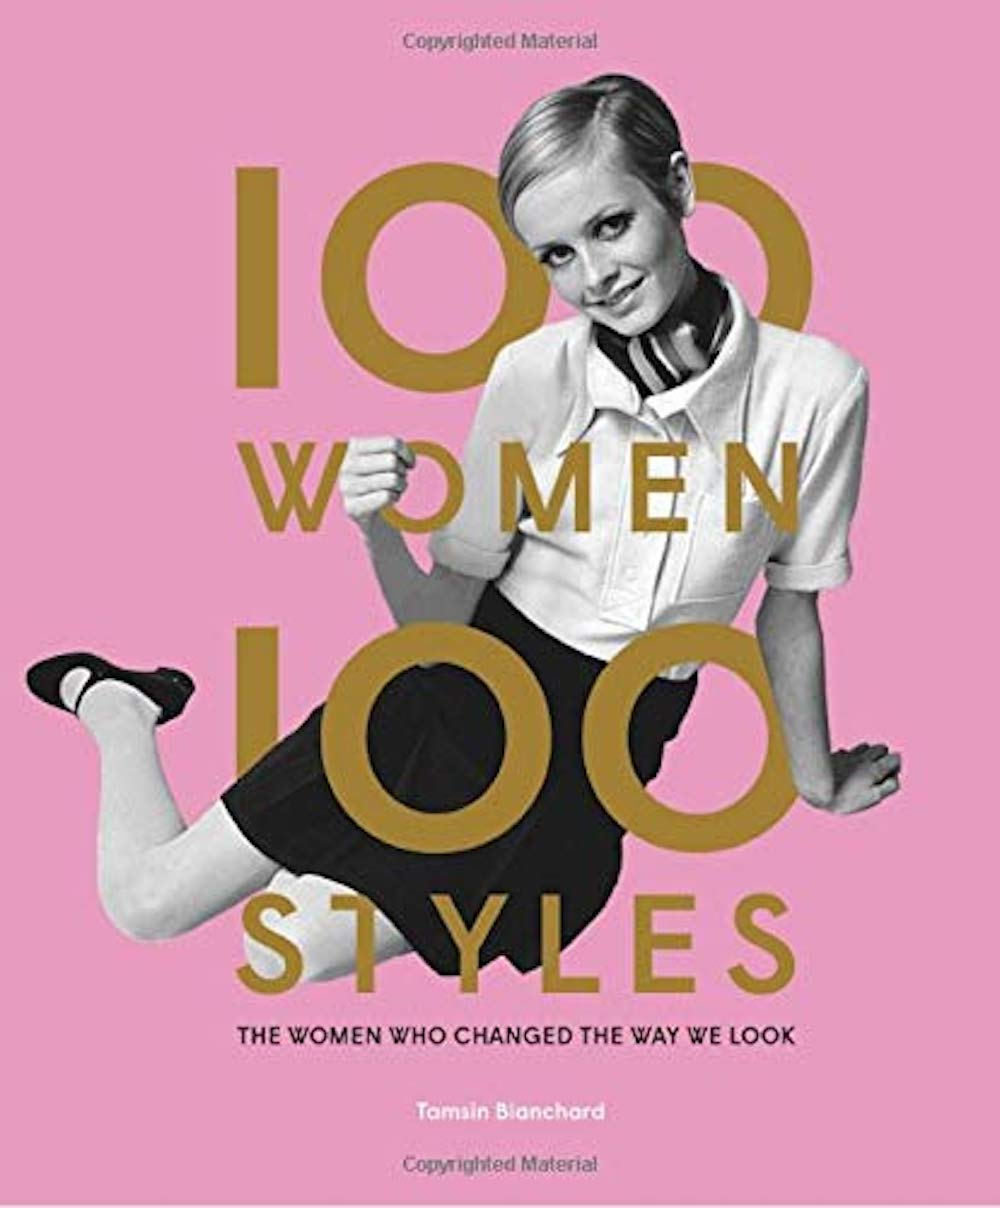 women fashion book cover